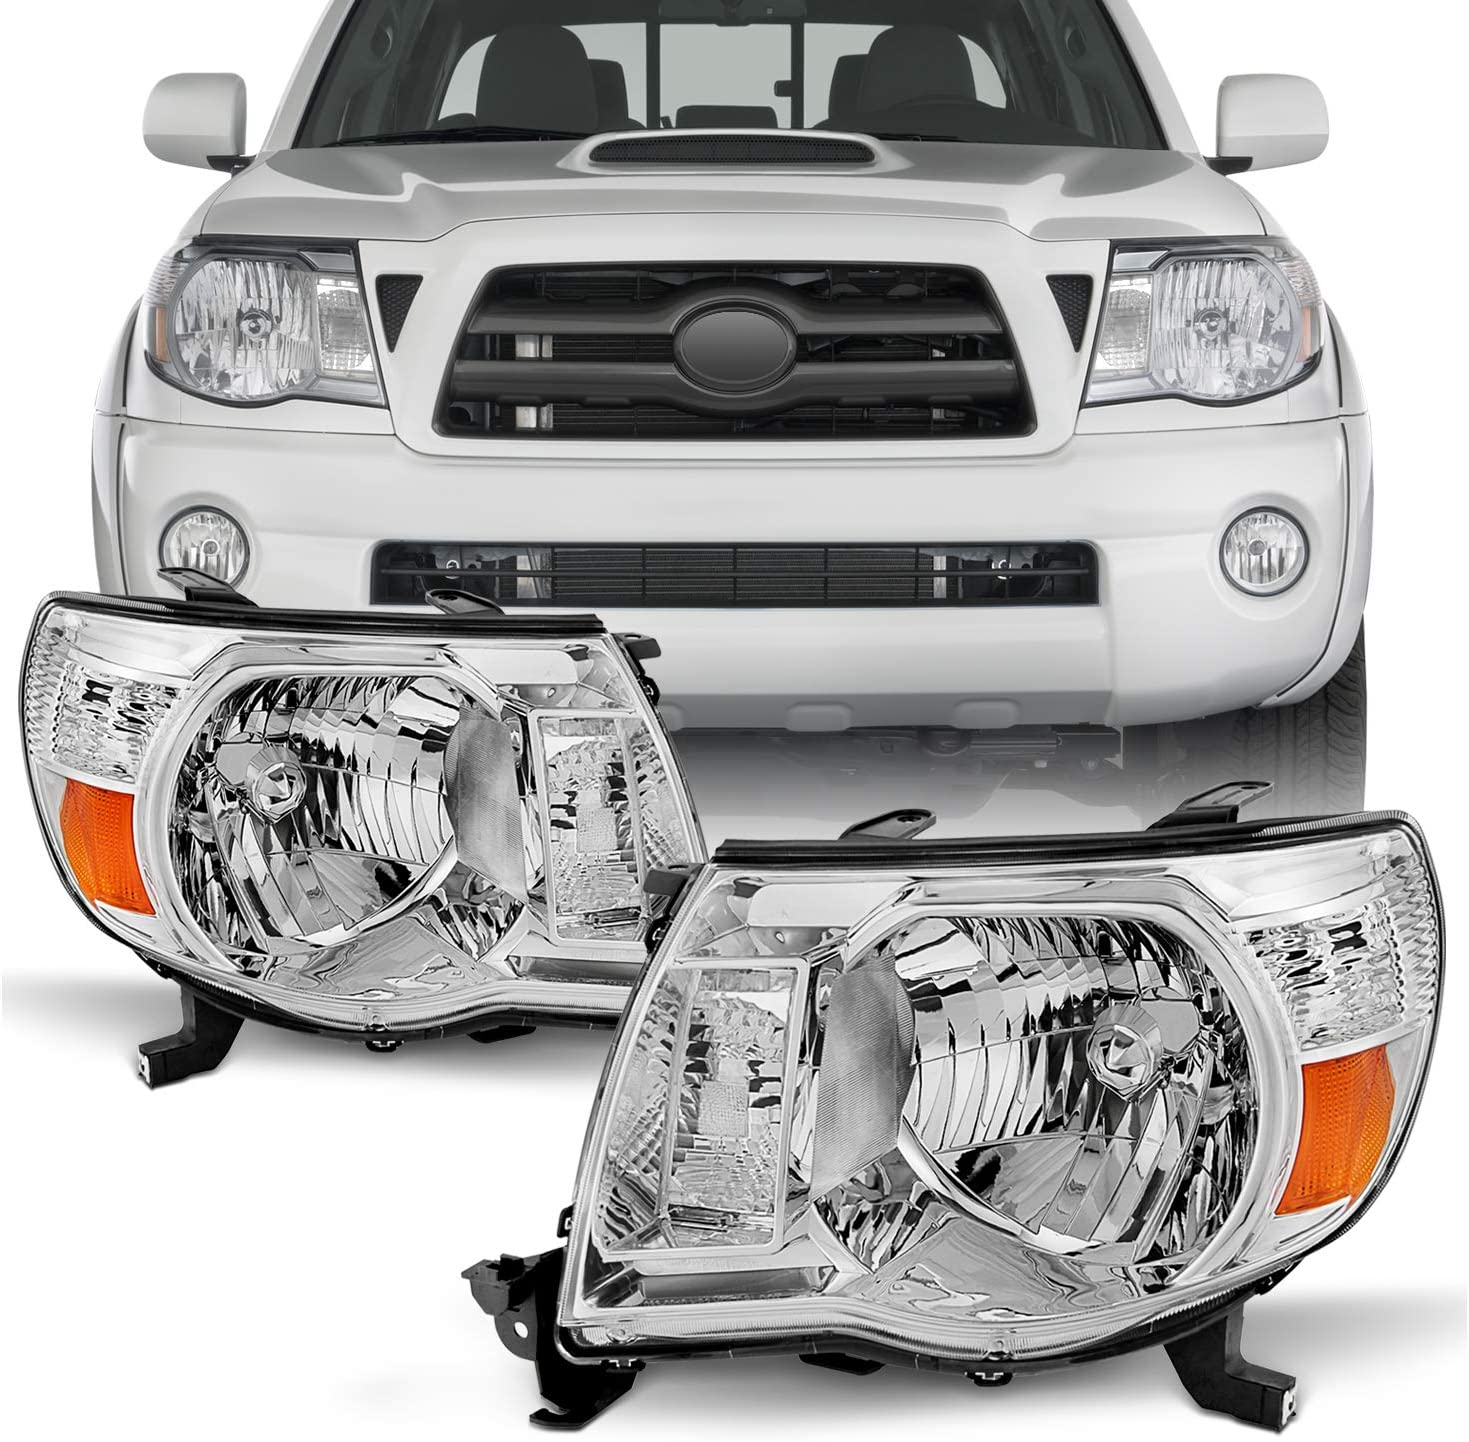 Headlights Assembly for 05-11 Toyota Tacoma Pickup Truck Headlight Assembly OE Style Replacement Chrome Housing Amber Reflector